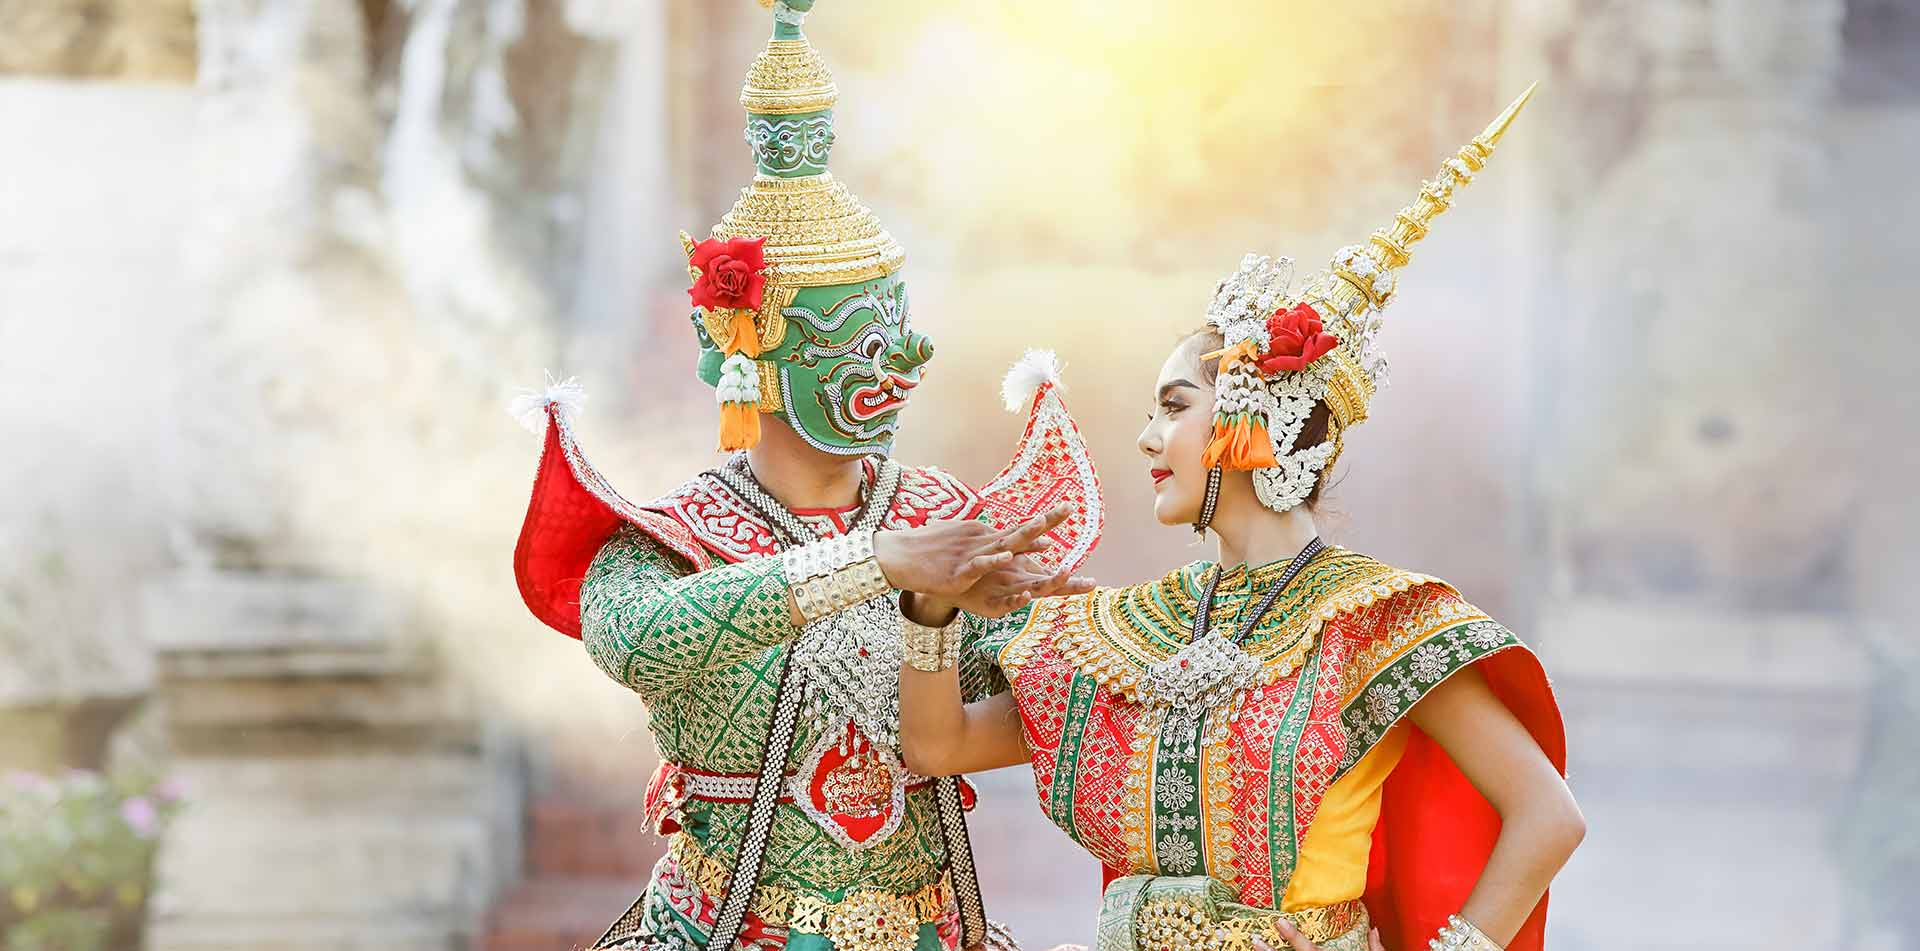 Thai people dressed in cultural outfits, Thailand